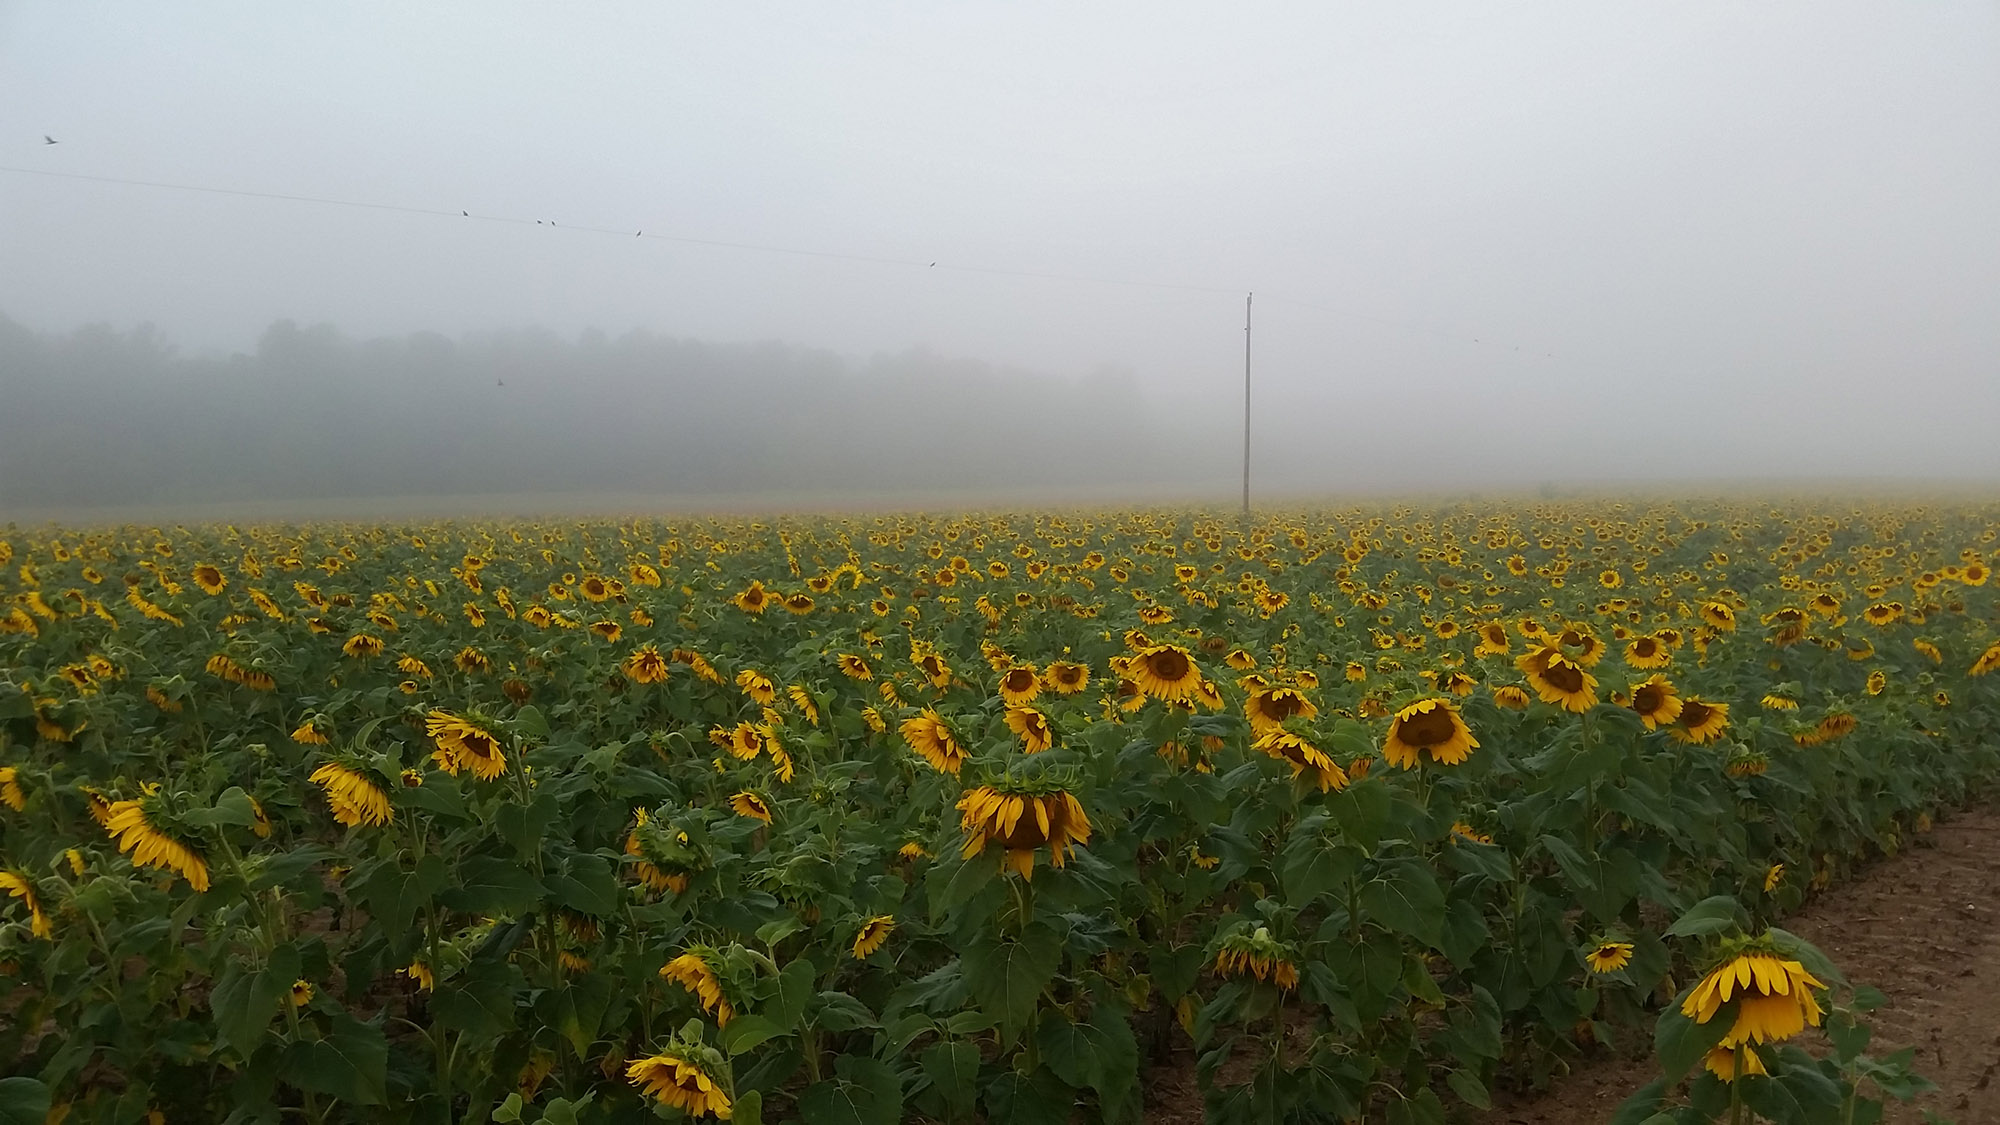 Sunflower field at Joe Kurz Wildlife Management Area in Gay, Georgia